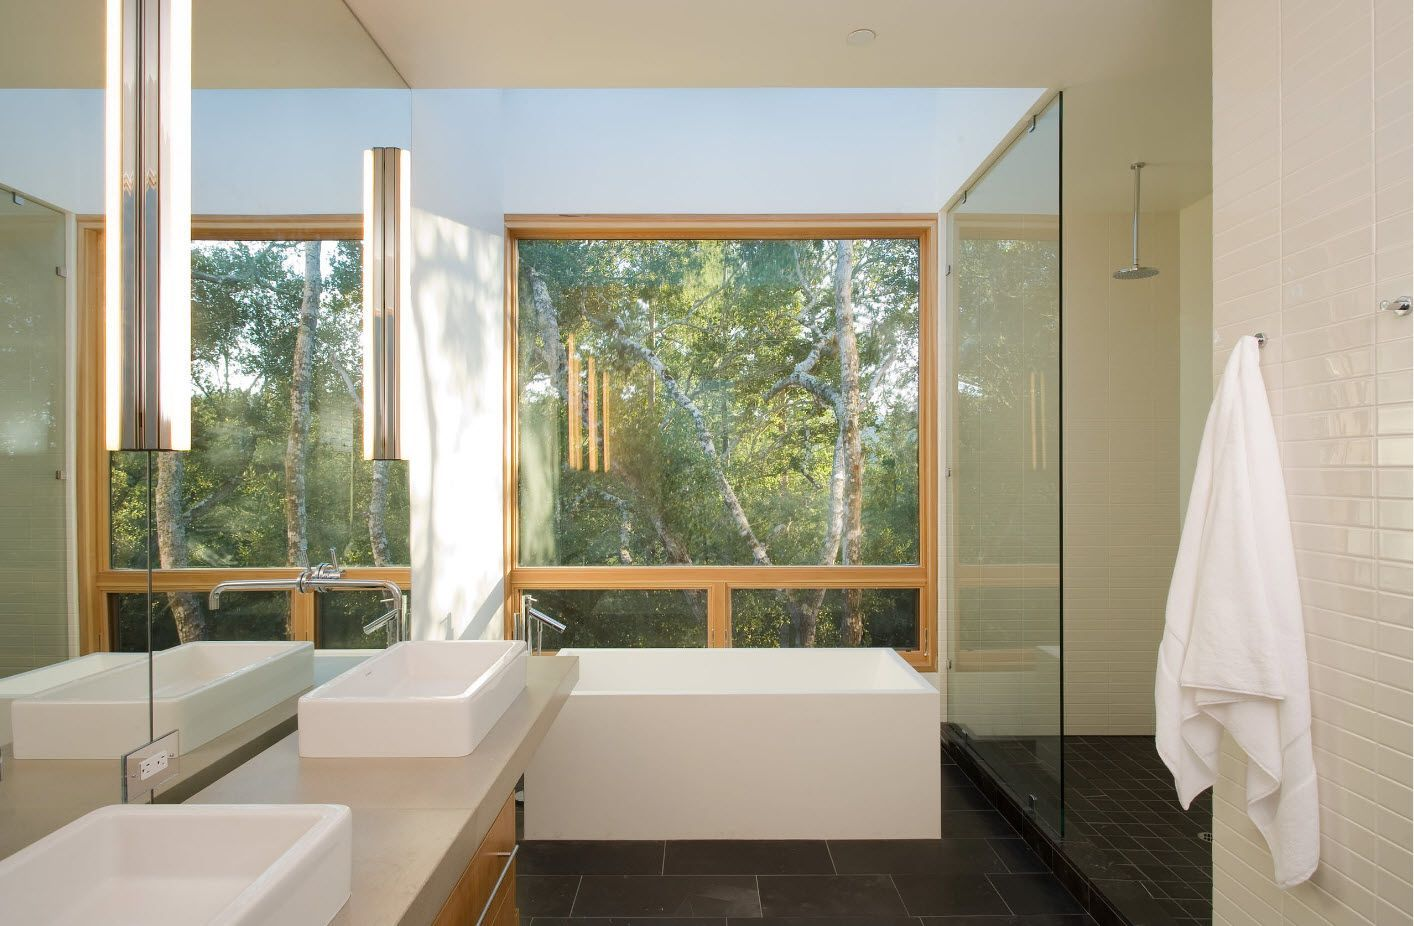 Large window and light finish in the bathroom